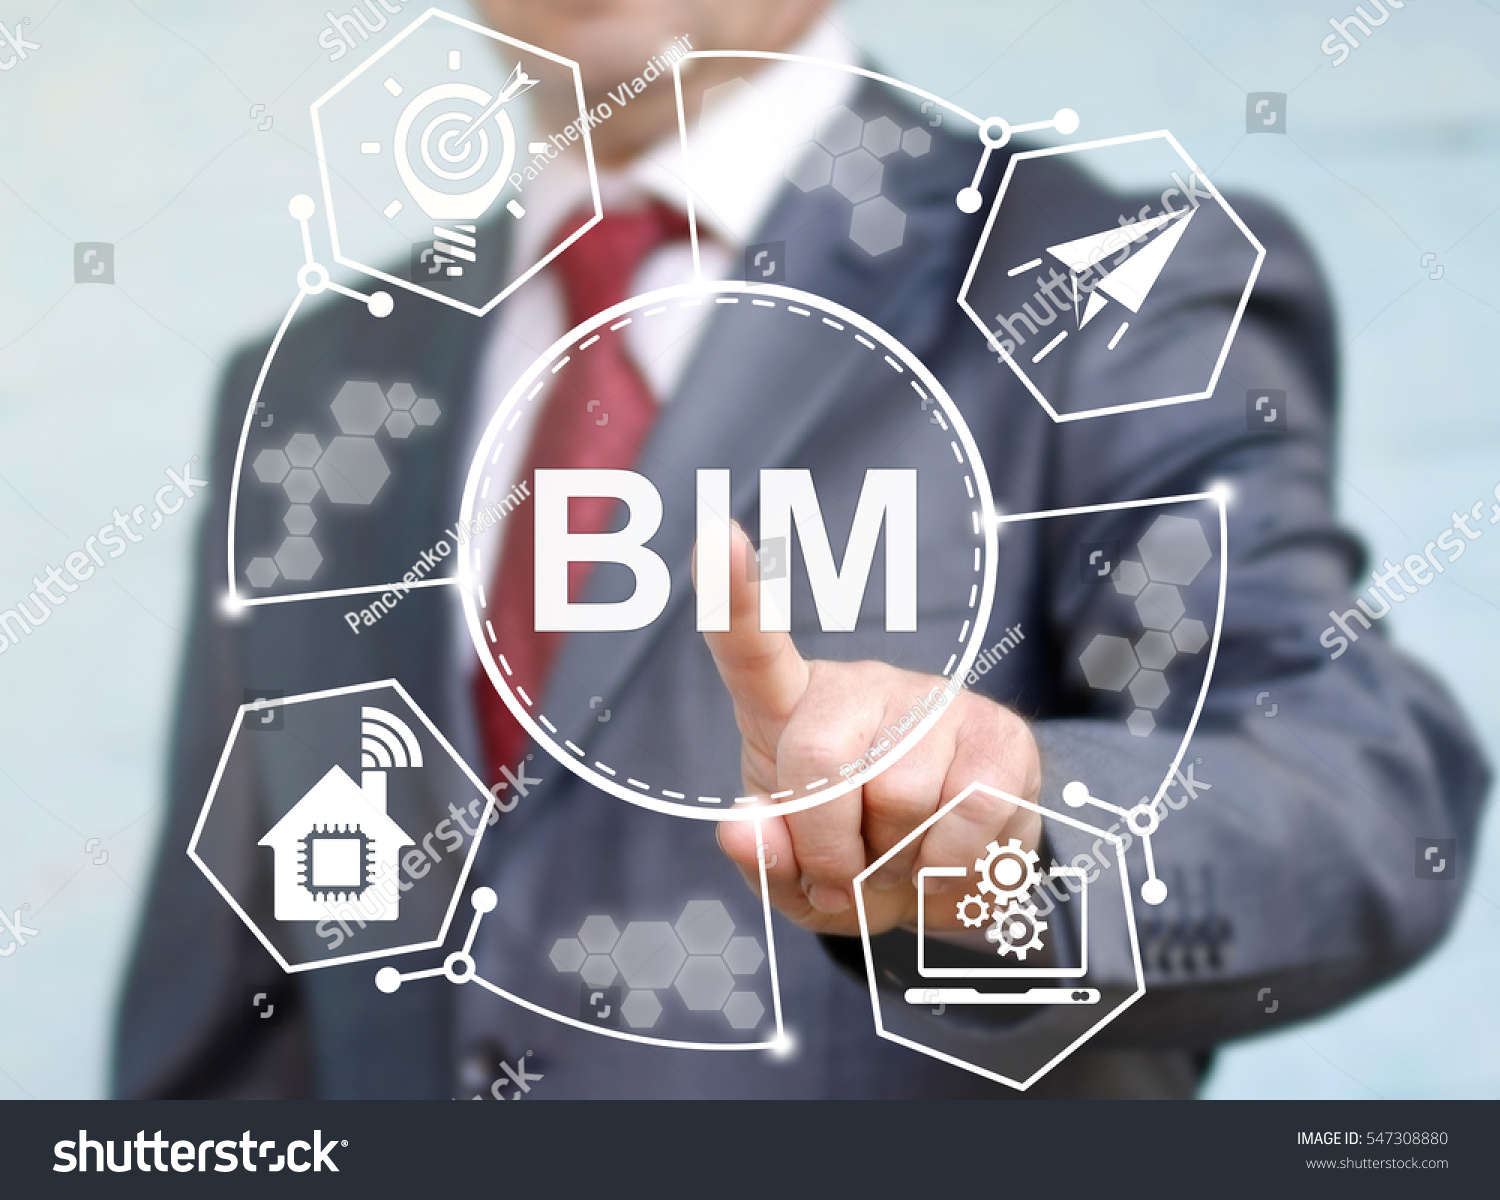 BIM building information modeling business industrial development physical web concept. Build, house, real estate, construction, architecture technology #547308880